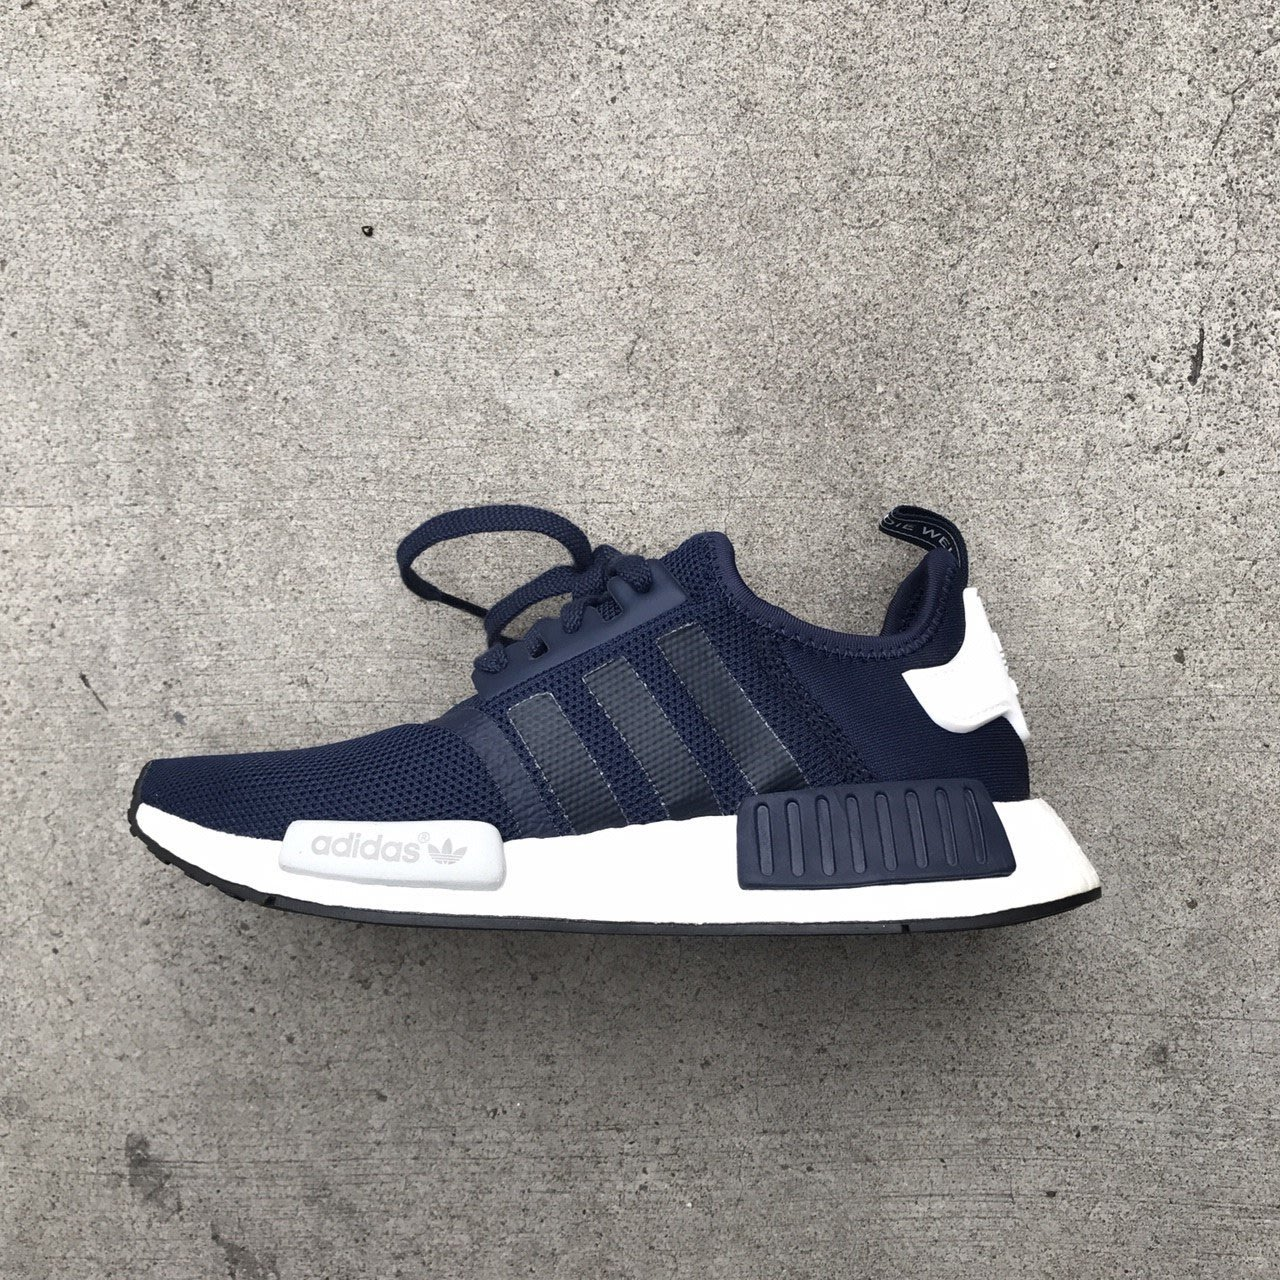 c9f491b281869 ☆LimeLight☆ Adidas Originals NMD Boost 拼接慢跑鞋S79161 深藍